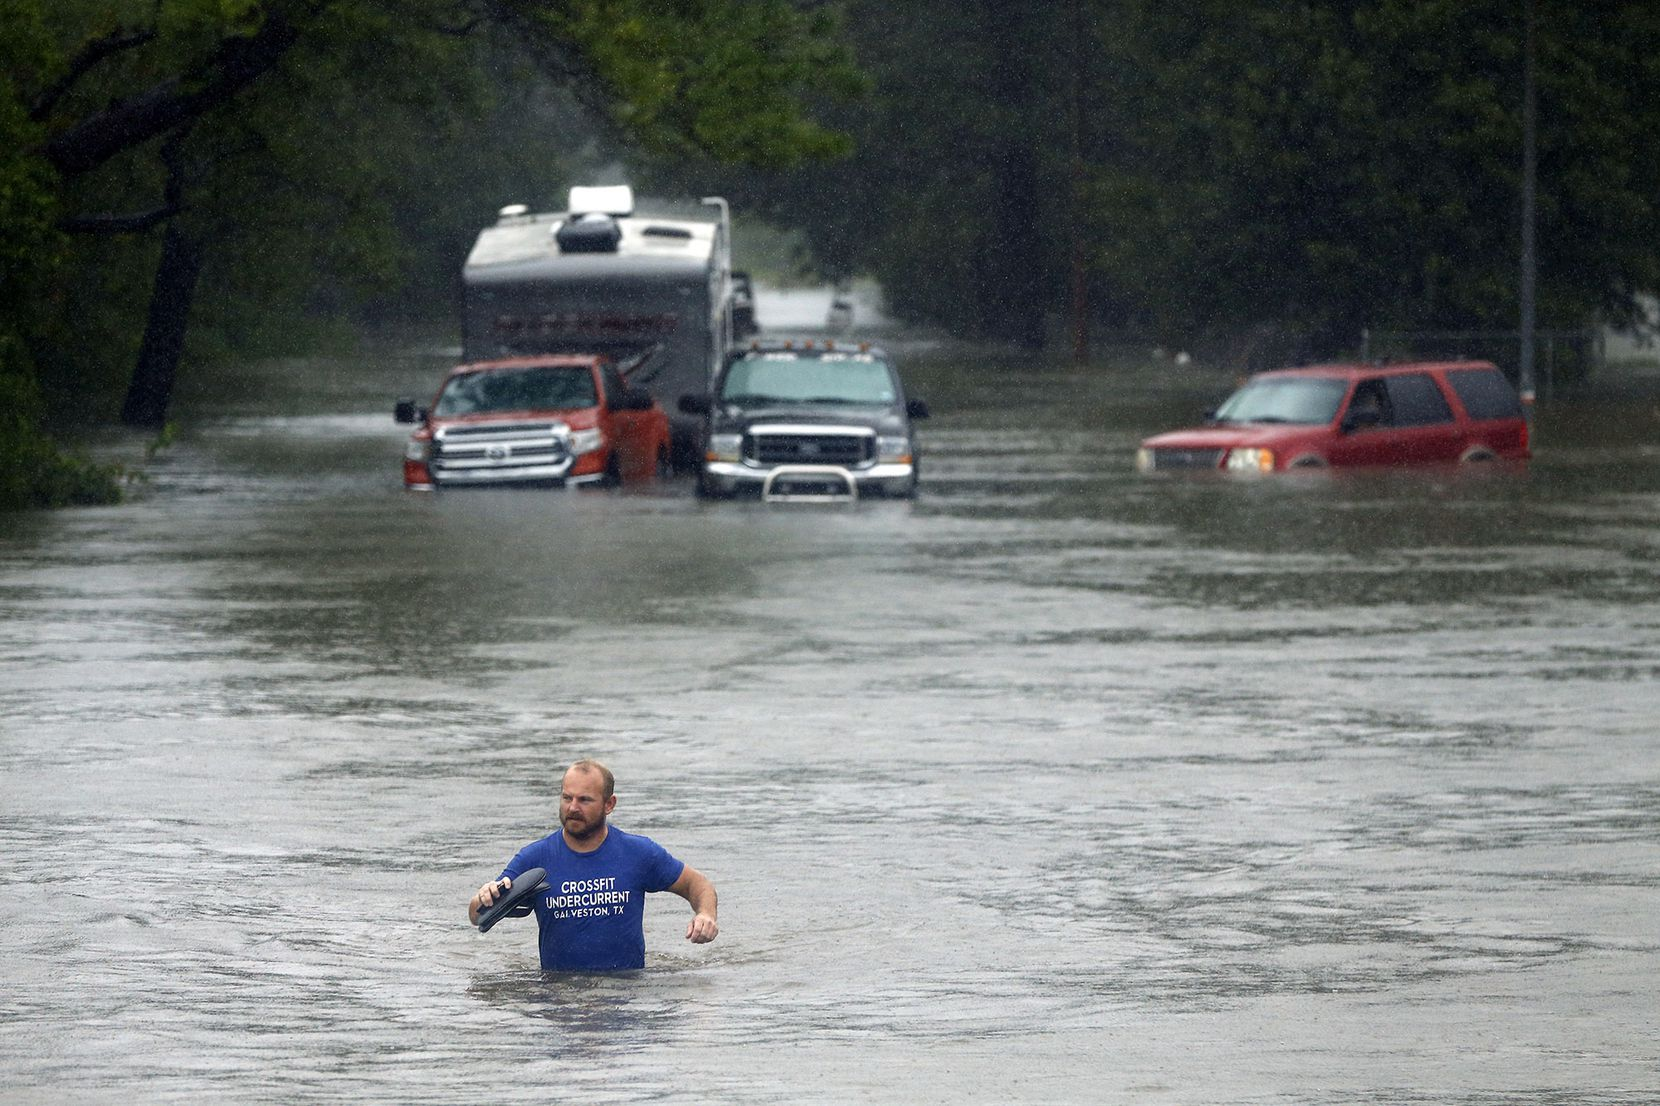 A man vacated his flooded out truck in Dickinson, Texas, Monday, August 28, 2017 after Tropical Storm Harvey dumped feet of rain on the Houston area. Residents were given a mandatory evacuation order on Monday. Some were transported to City Hall and the First Baptist Church for transport to the Brown Convention Center in Houston.